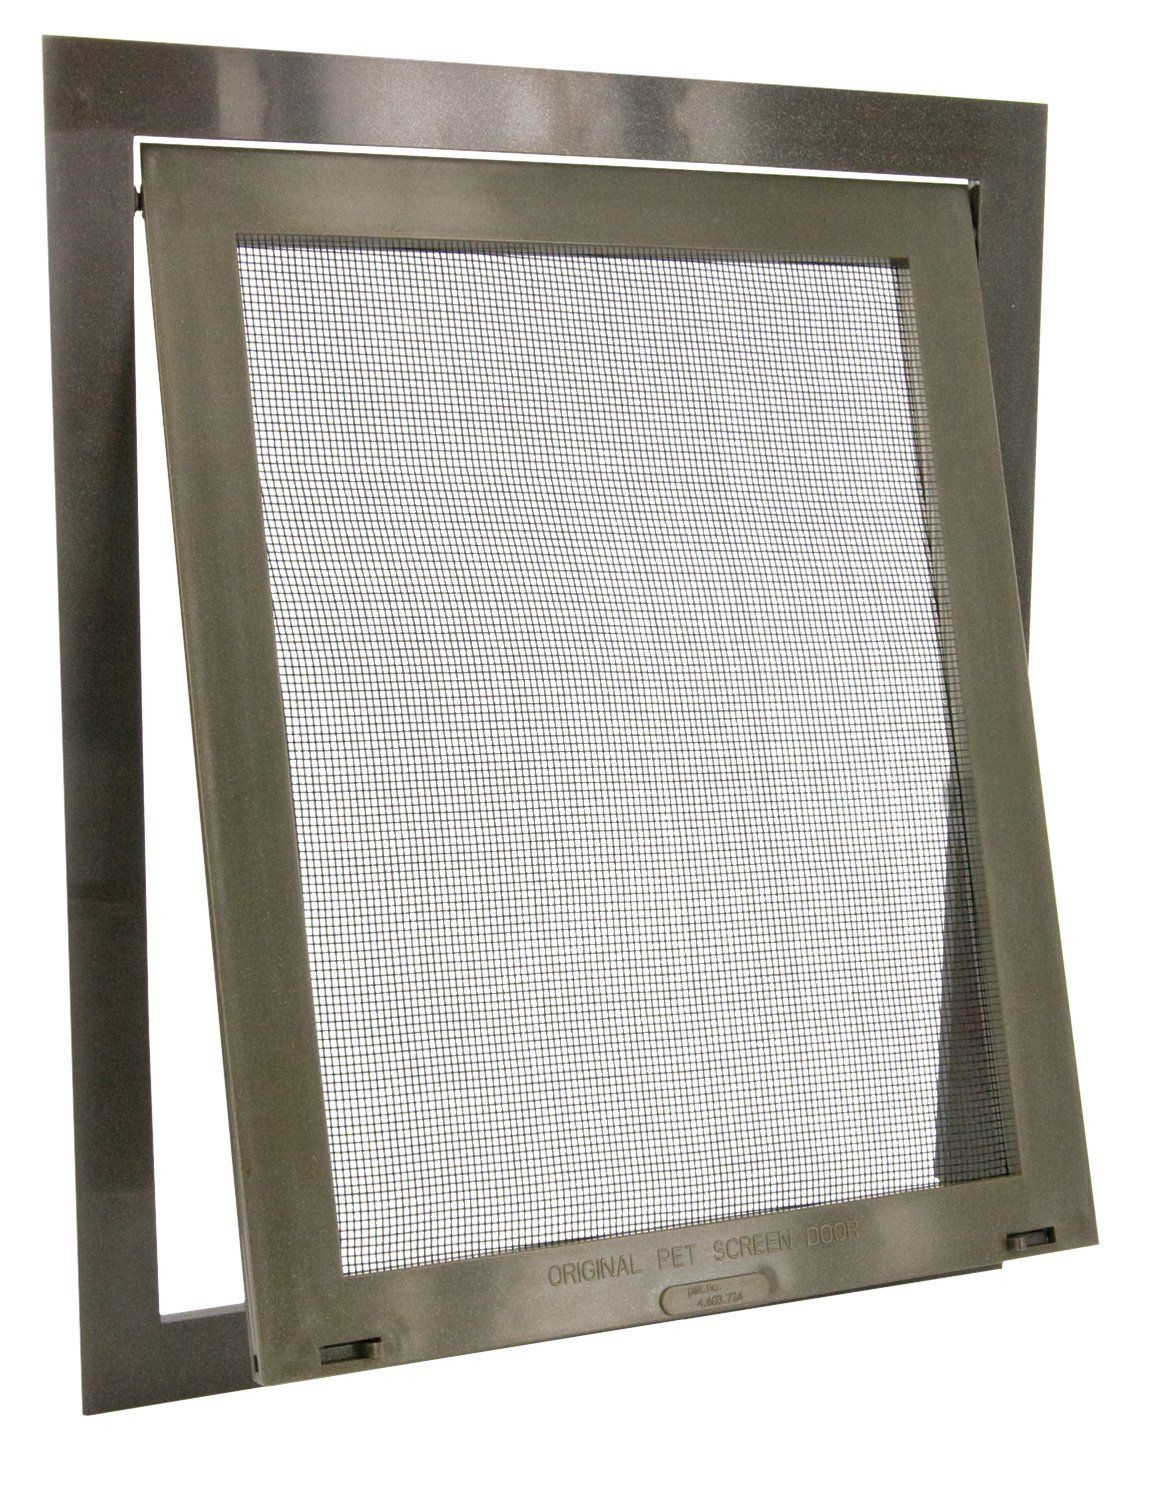 Catsafe Cat Screen Door Startling Review Available Here Cat